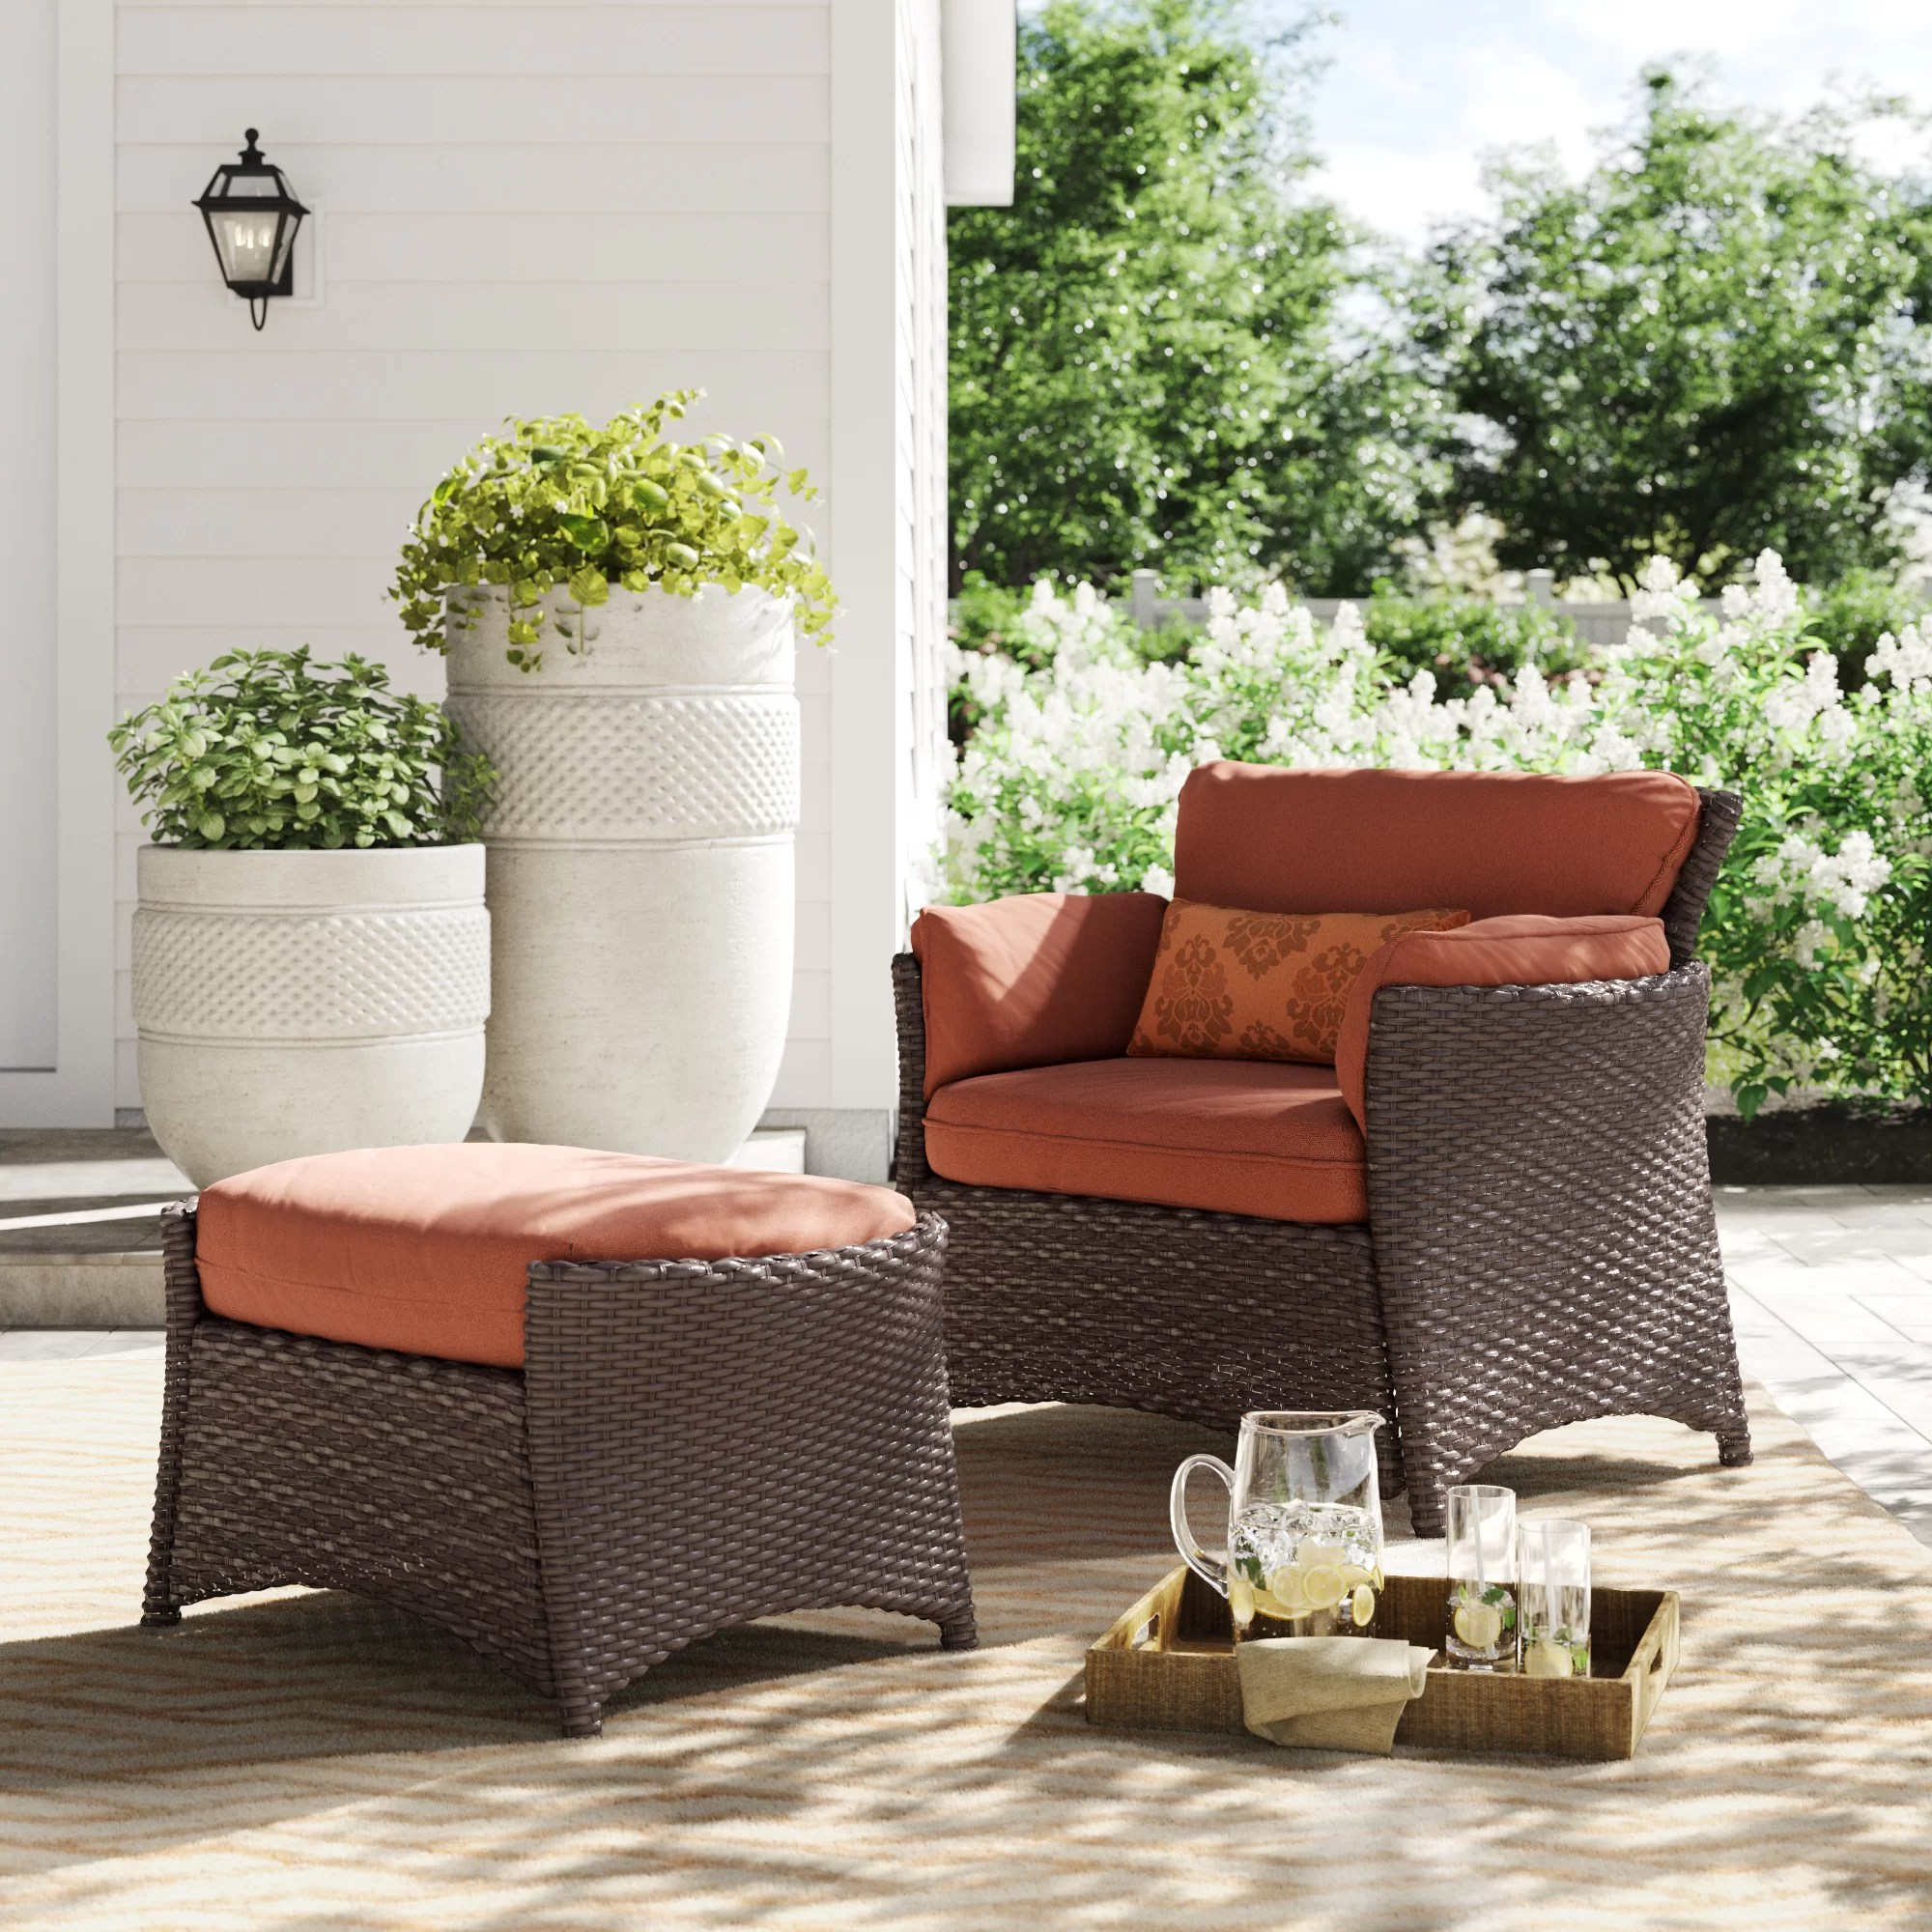 asherman 2 piece deep seating patio chair with cushions and ottoman